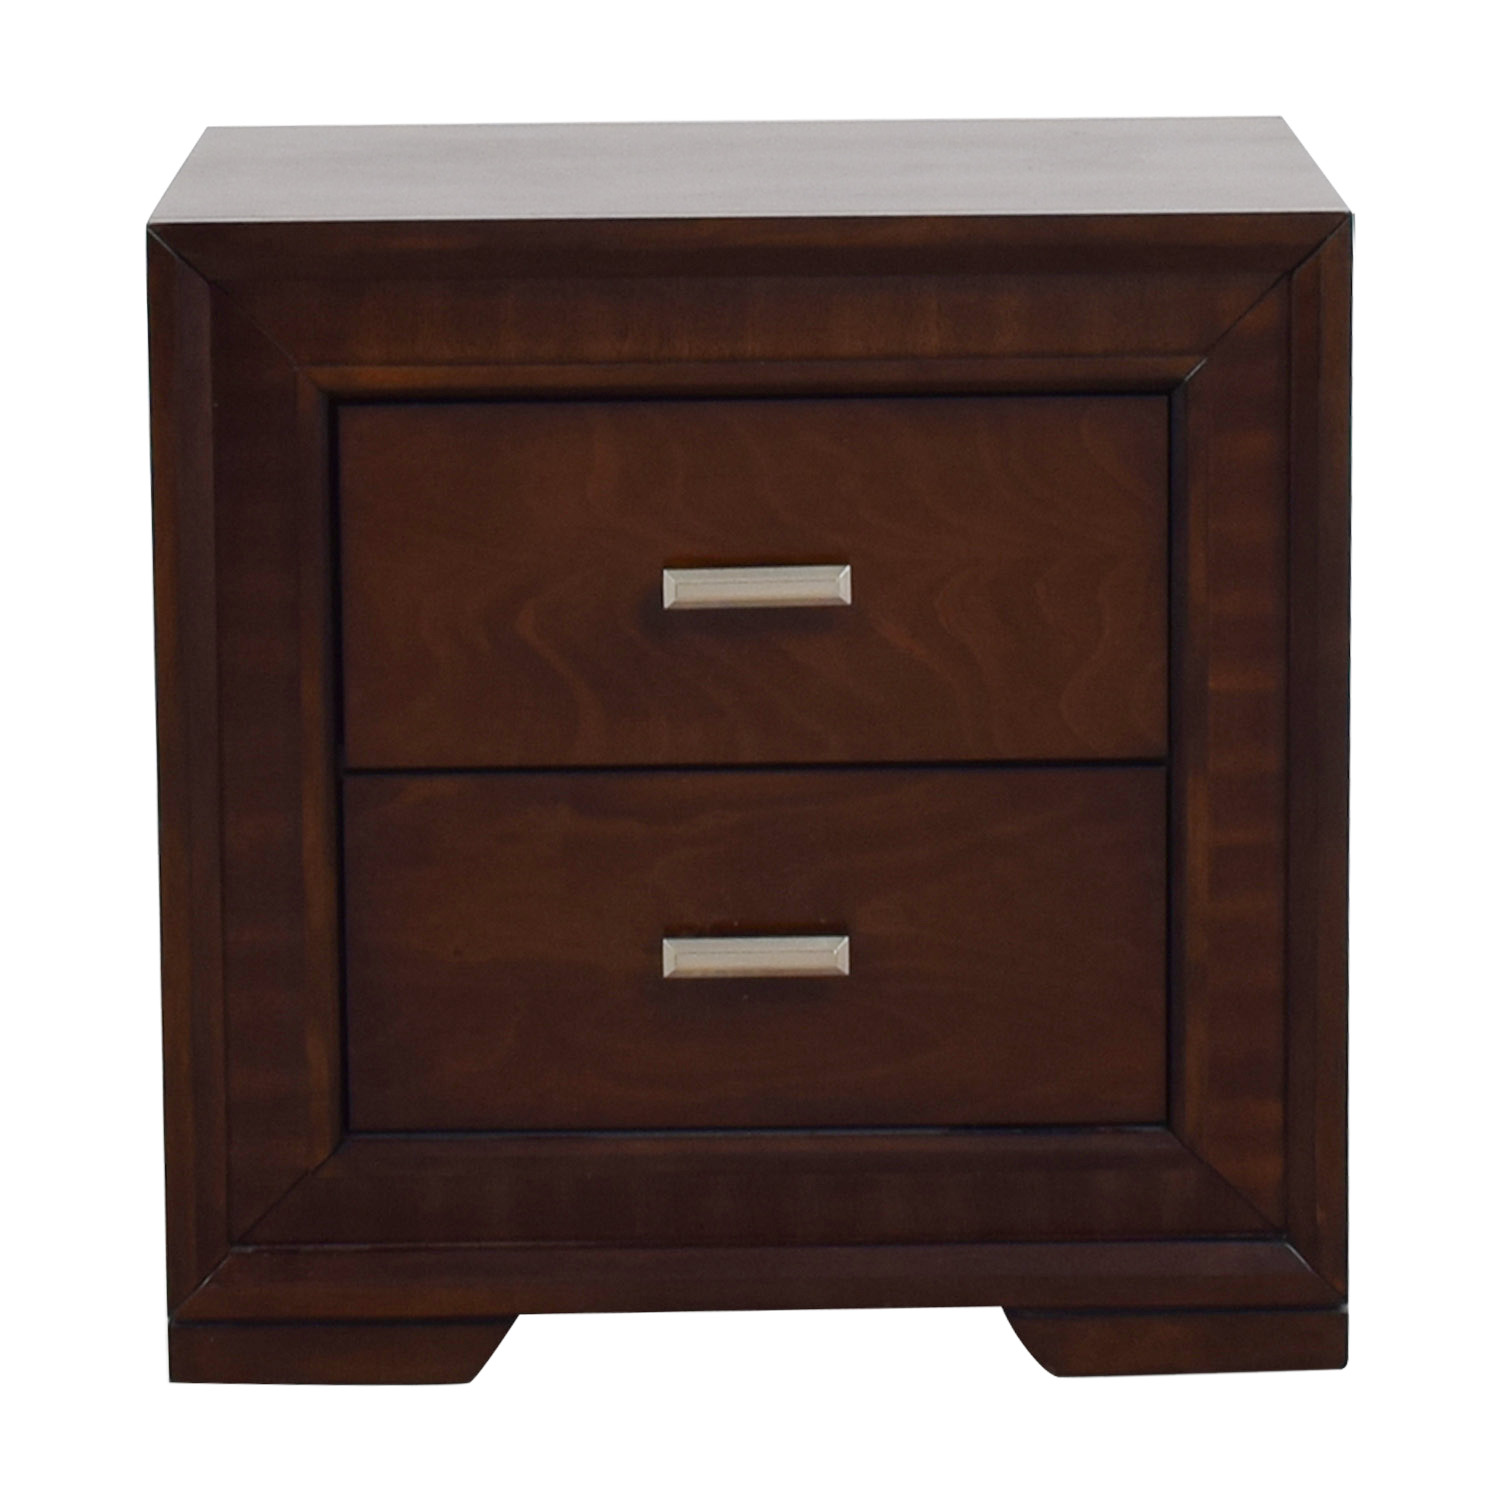 Bobs Furniture Bobs Furniture Brown Wood Side Table Nyc ...